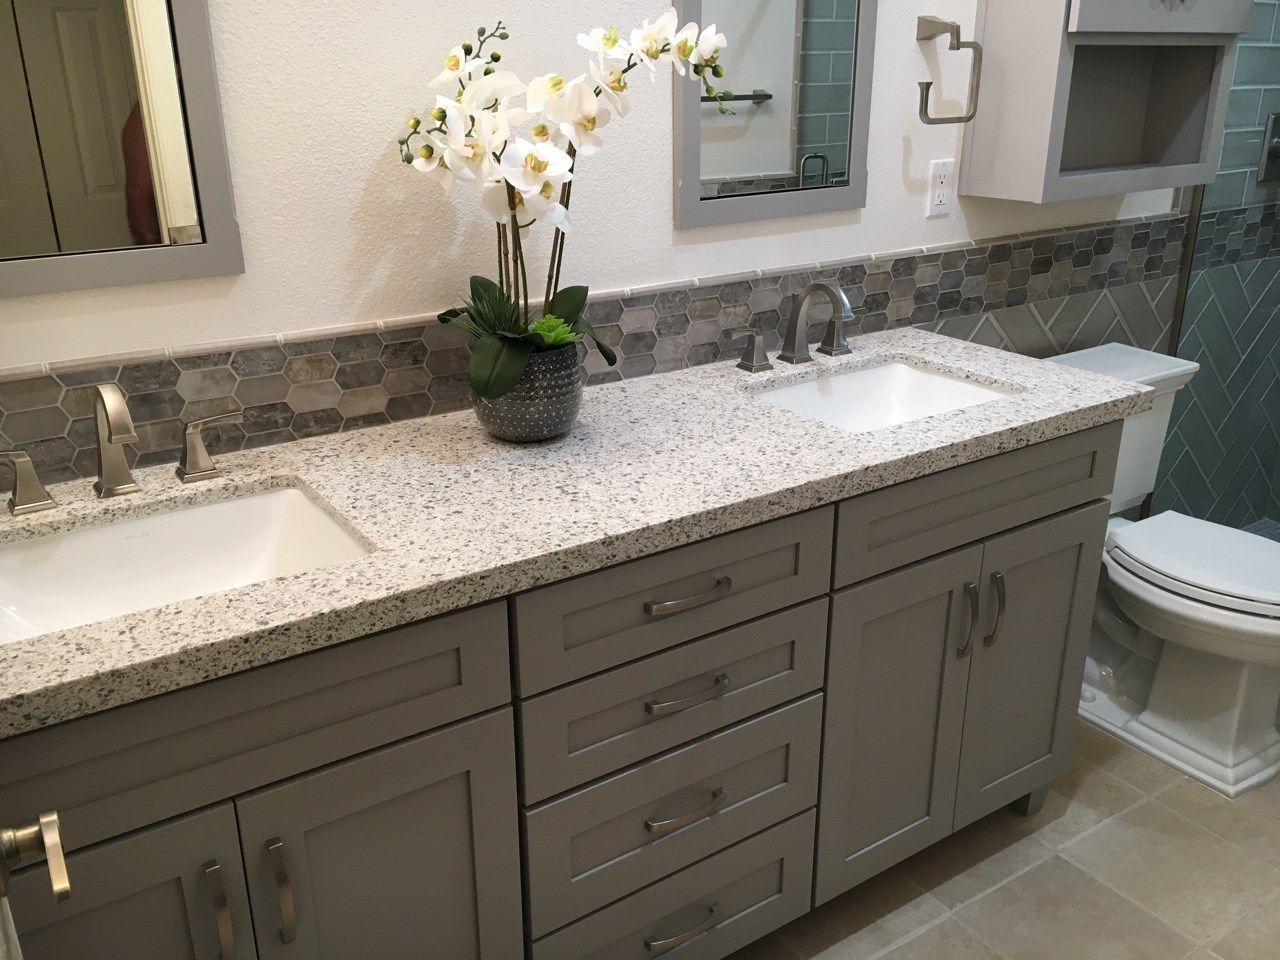 Prairie Style Shaker Cabinetry With Dove Gray Paint Paired Perfectly With The Quartz Countertops And Glass M Bathrooms Remodel Bathroom Remodel Gallery Remodel [ jpg ]